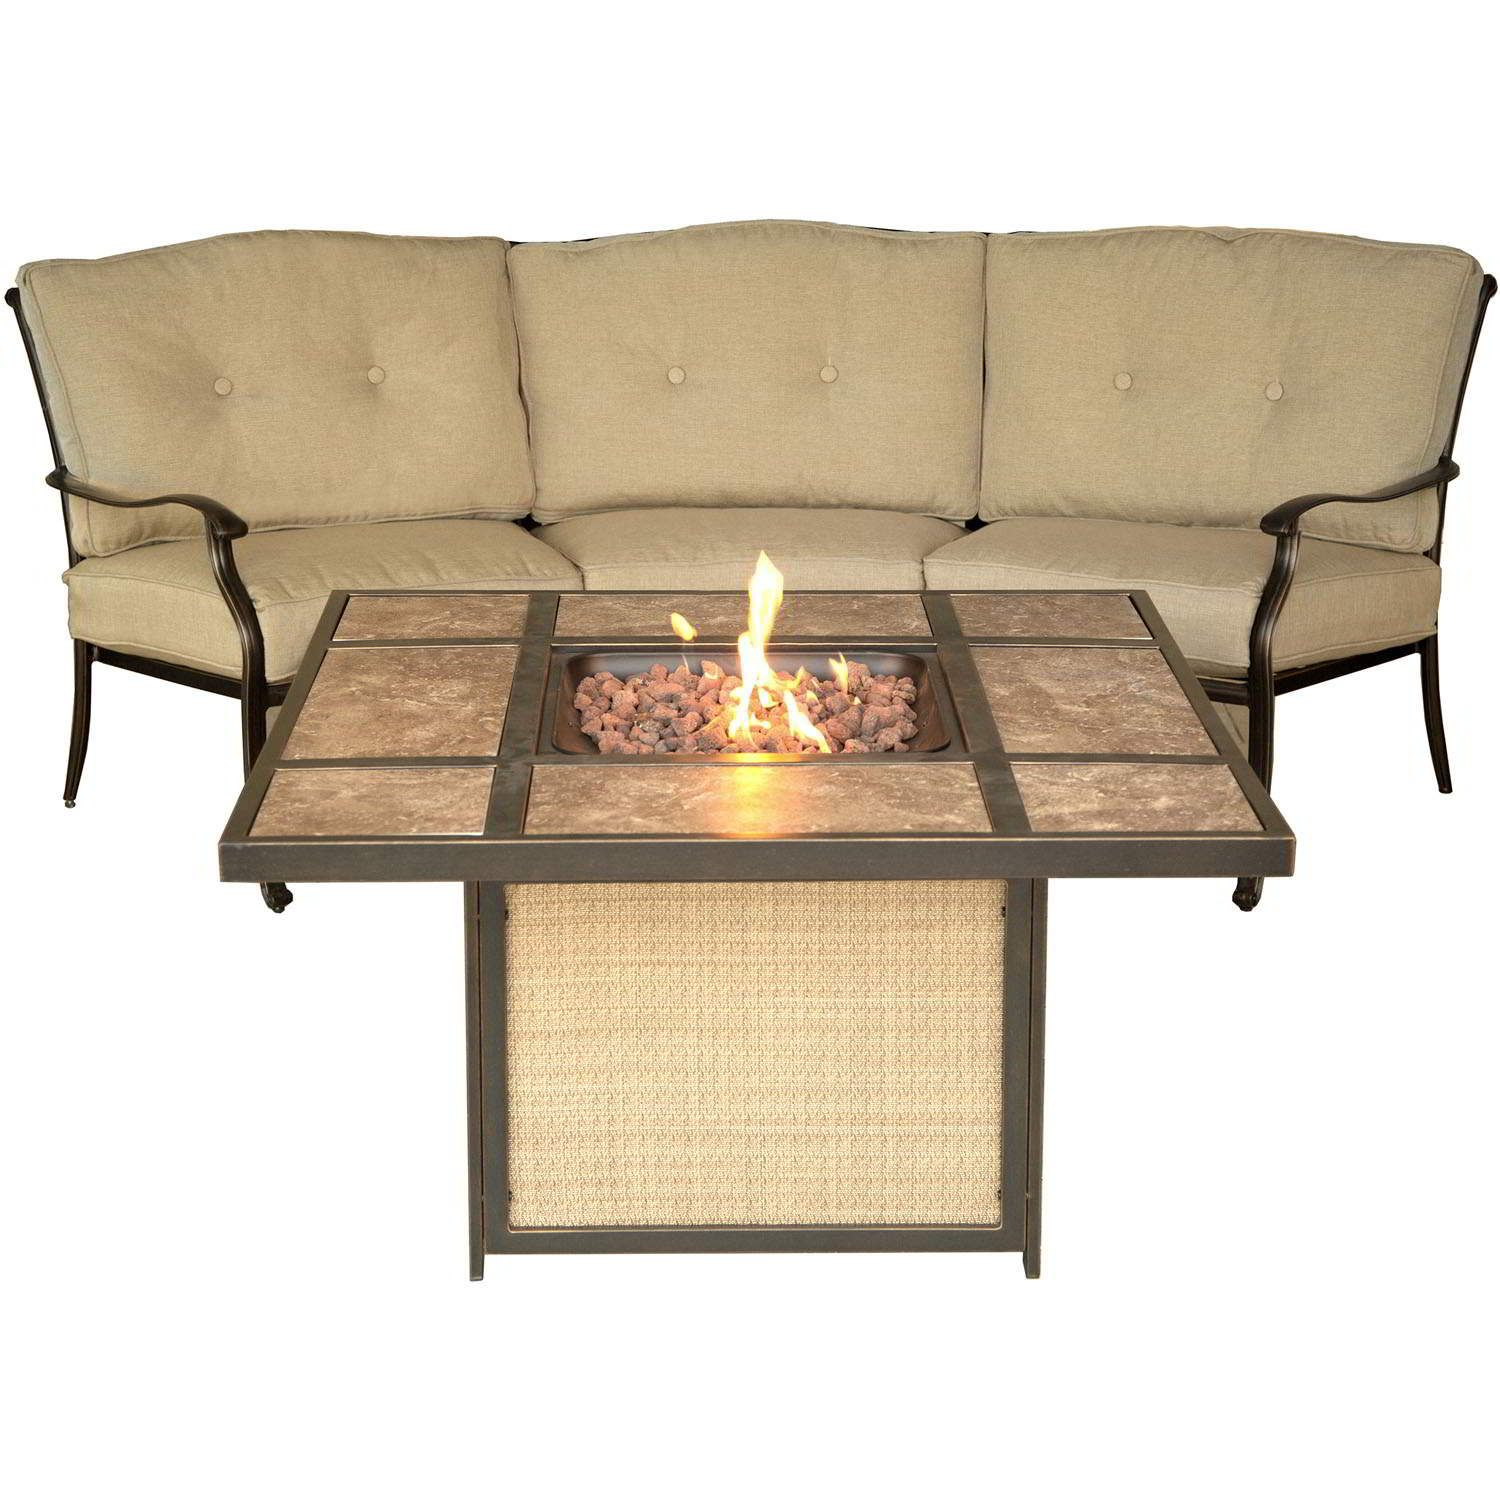 traditions crescent sofa and tile top fire pit set outdoor living